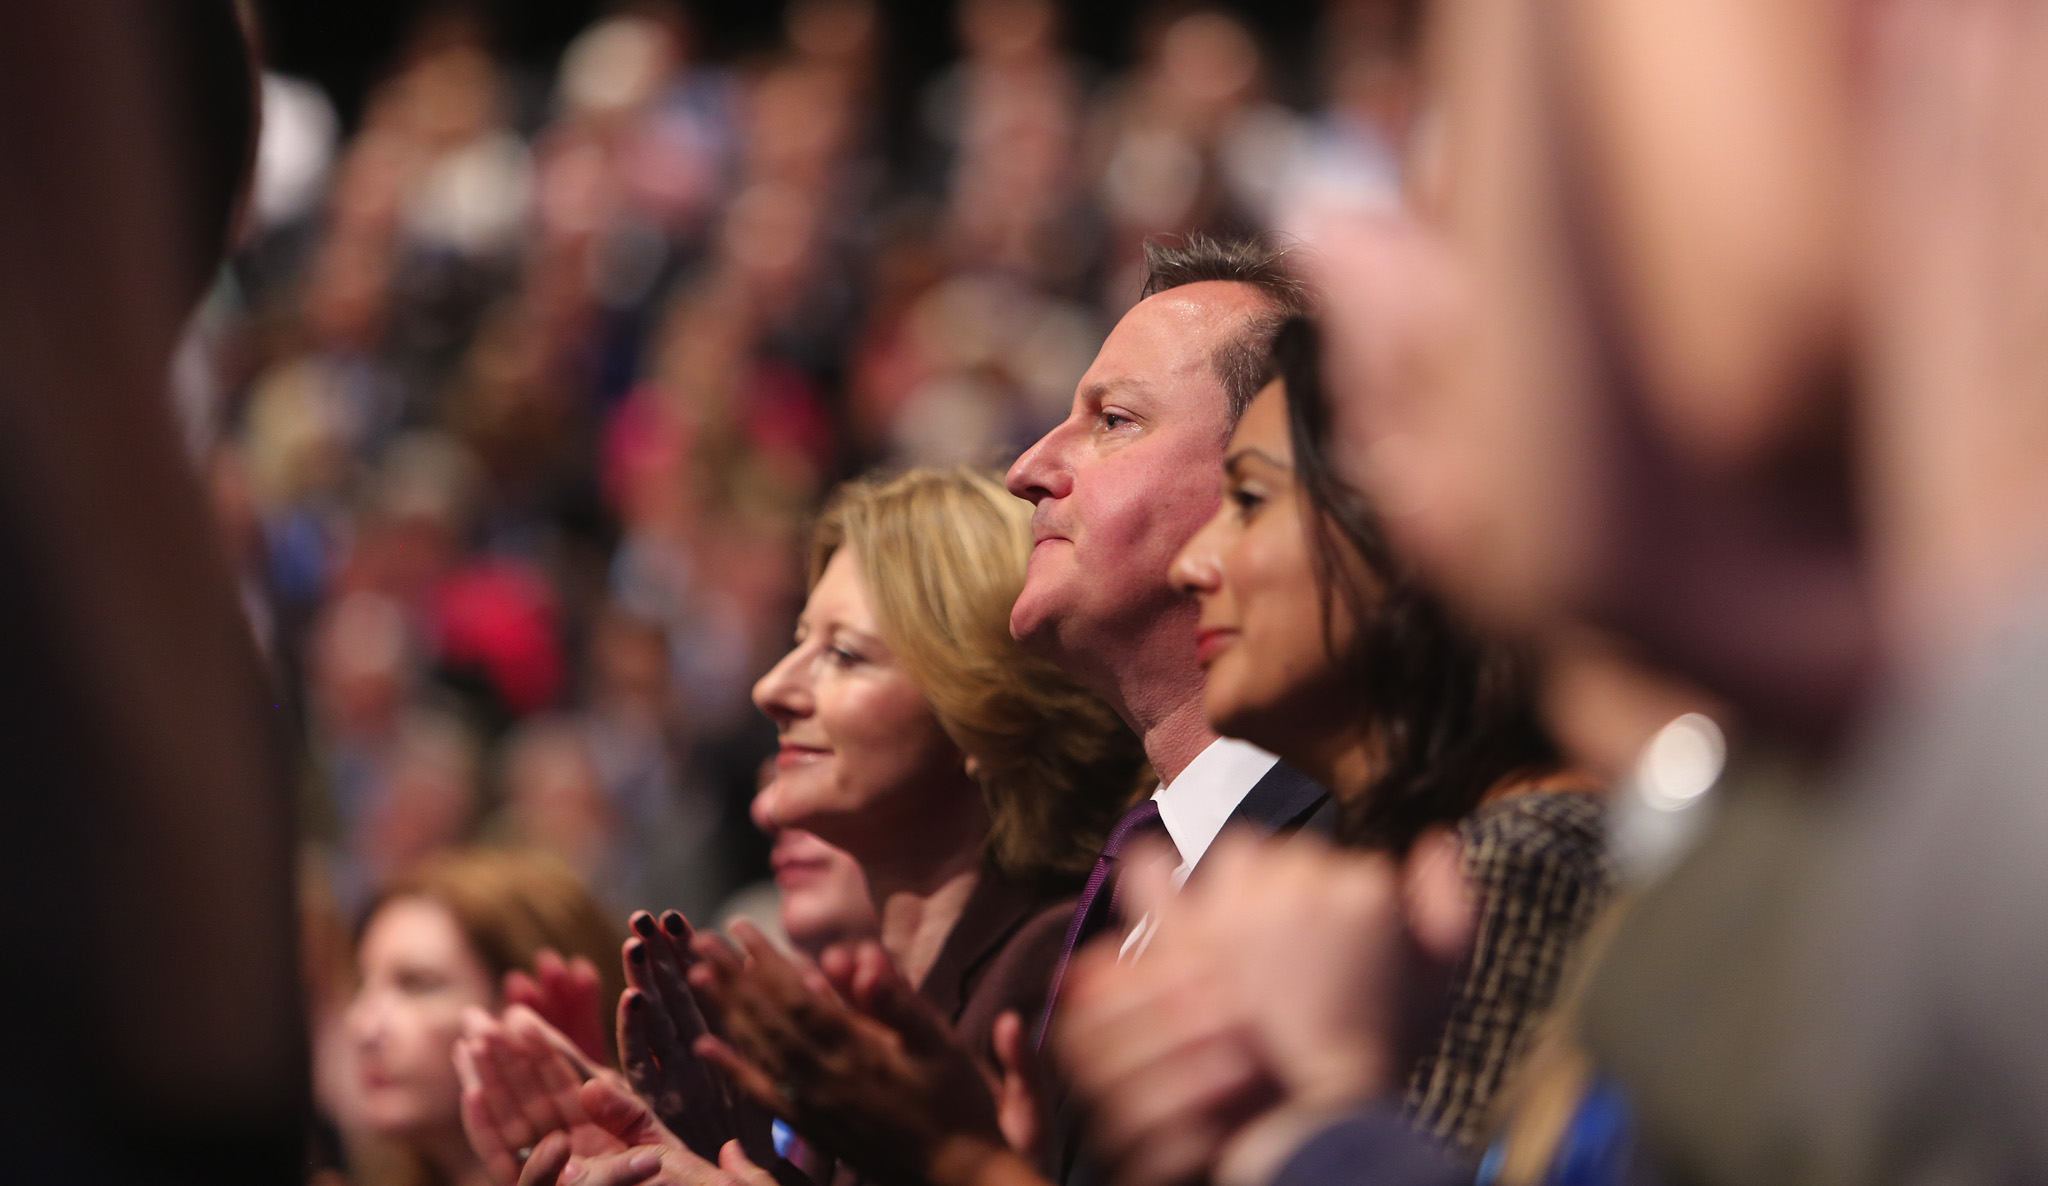 British Prime minister David Cameron listens as the Chancellor of the Exchequer, George Osborne, delivered his keynote speech at the Conservative Party conference in Manchester.